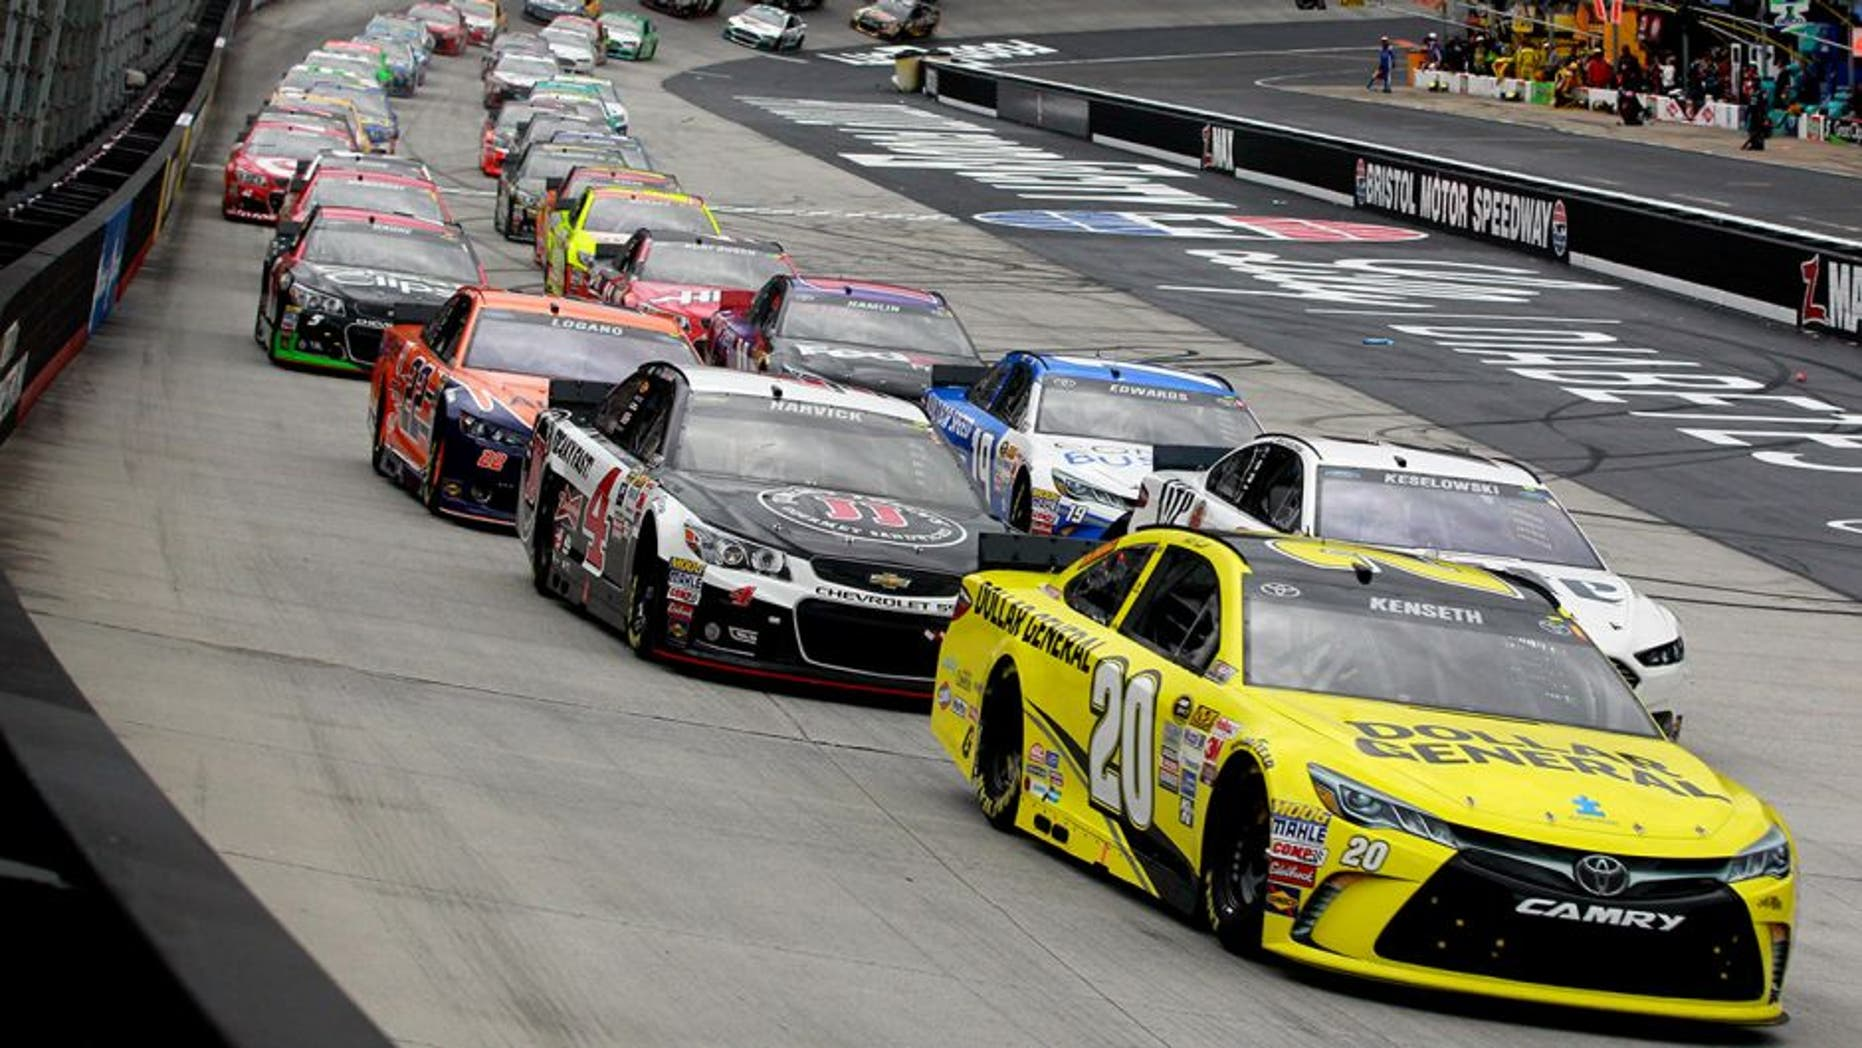 BRISTOL, TN - APRIL 19: Matt Kenseth, driver of the #20 Dollar General Toyota, leads the field to start the NASCAR Sprint Cup Series Food City 500 at Bristol Motor Speedway on April 19, 2015 in Bristol, Tennessee. (Photo by Brian Lawdermilk/Getty Images)